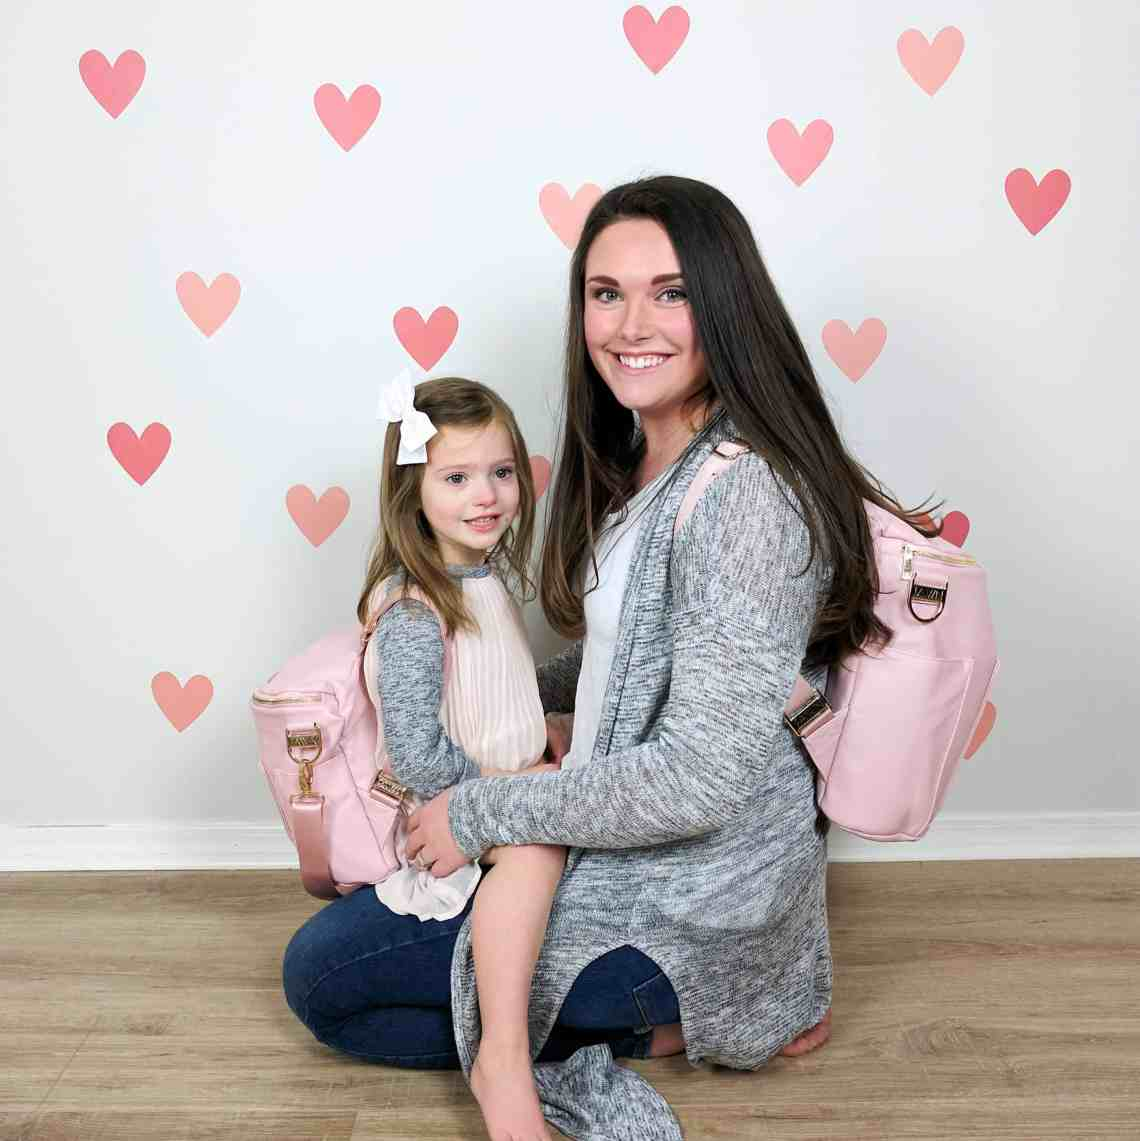 mom and daughter with matching pink bags in front of heart wall